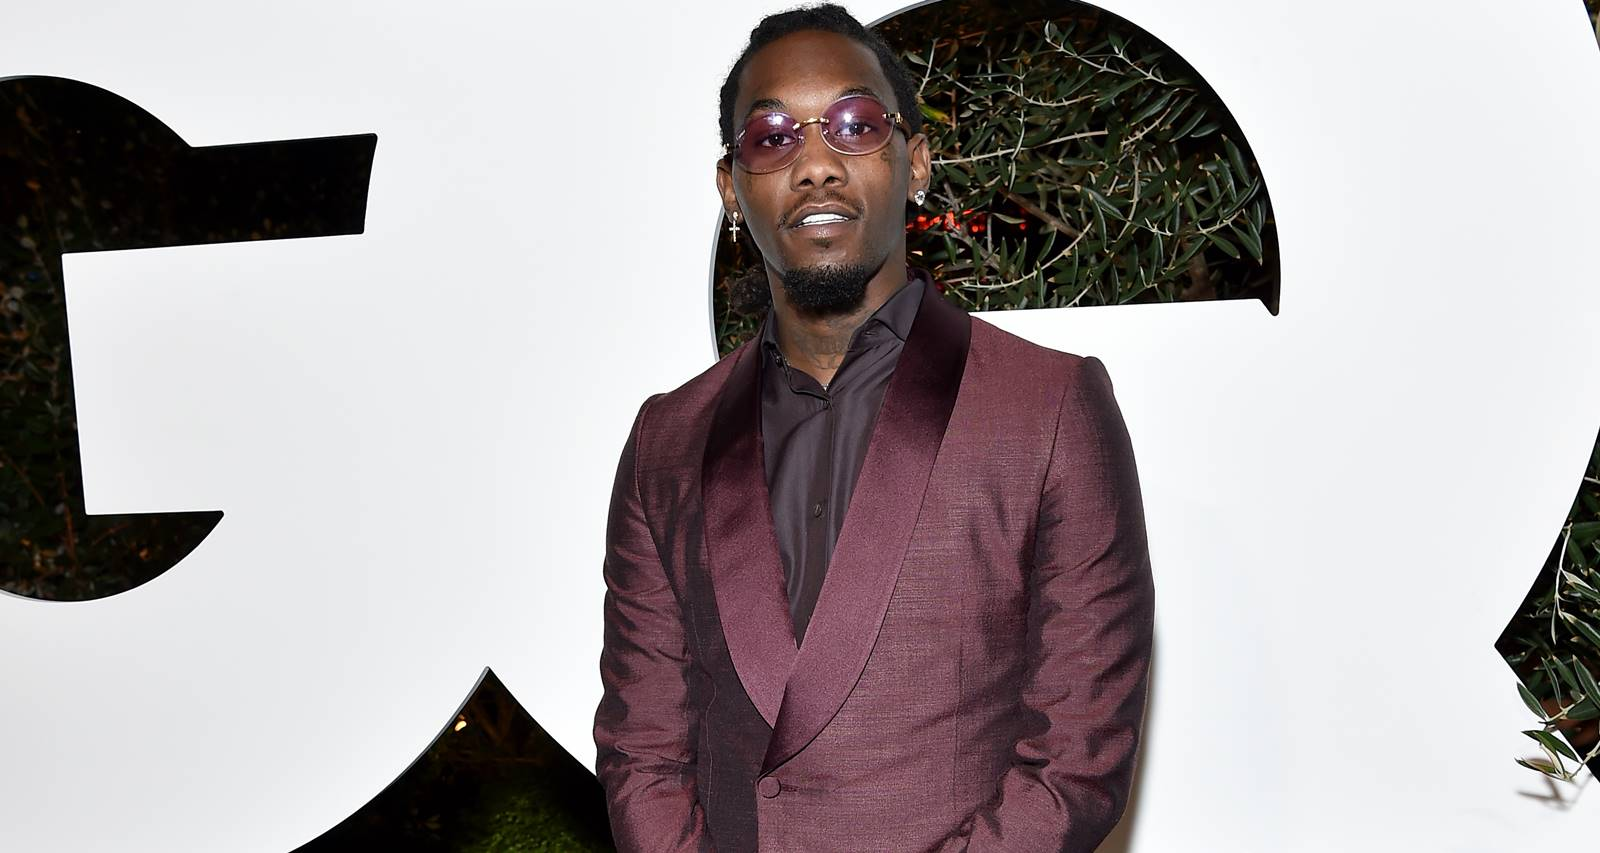 Offset Net Worth 2019: How Rich Is Cardi B's Husband?